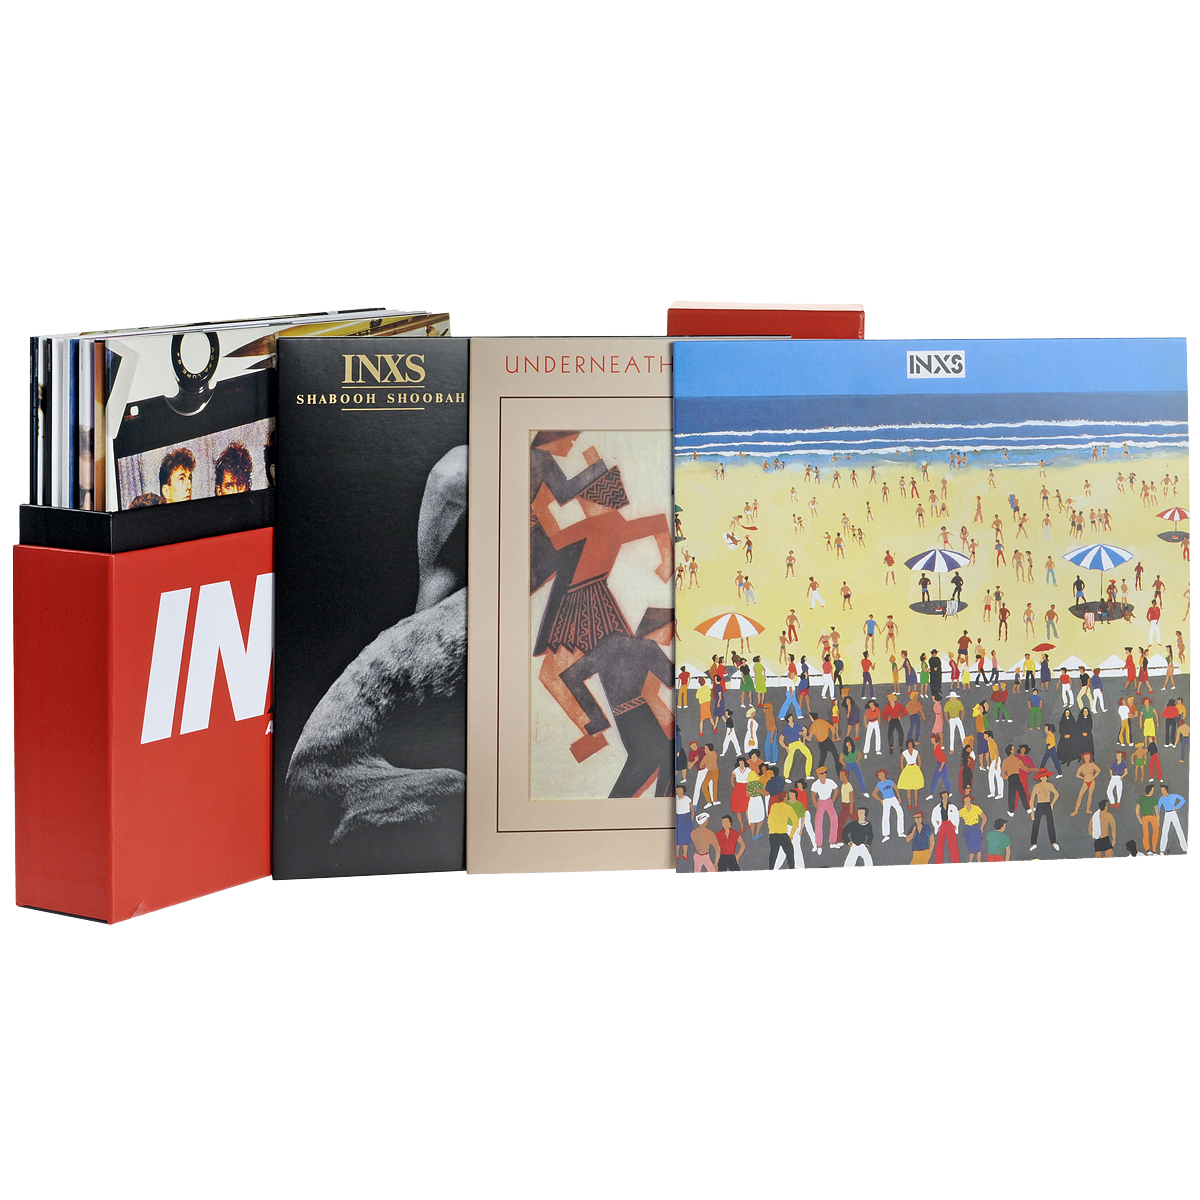 INXS. All The Voices. Album Collection (10 🔟 LP) – Telegraph